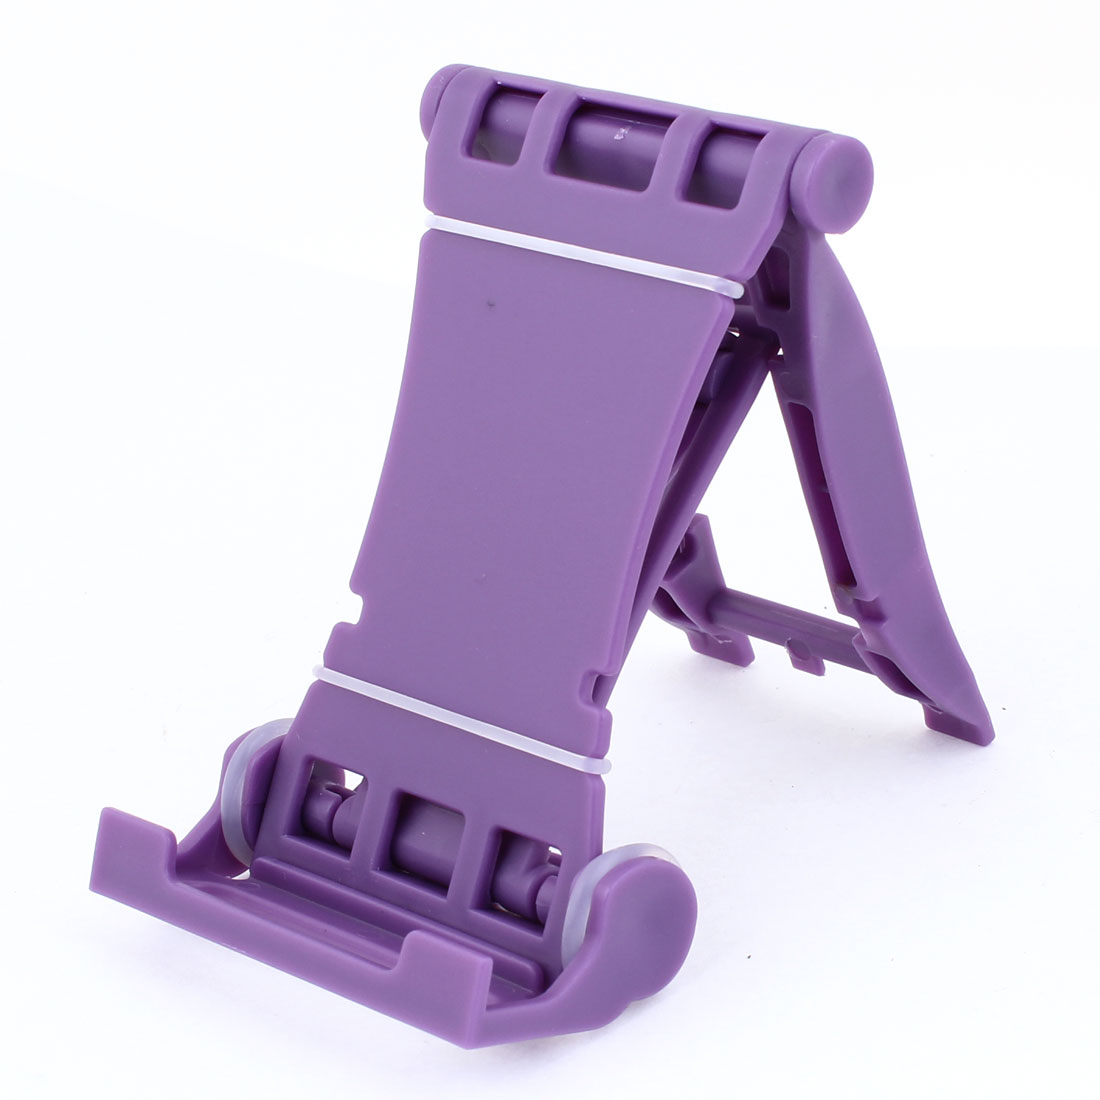 Universal Plastic Adjustable Smartphone Phone Holder Purple for Car